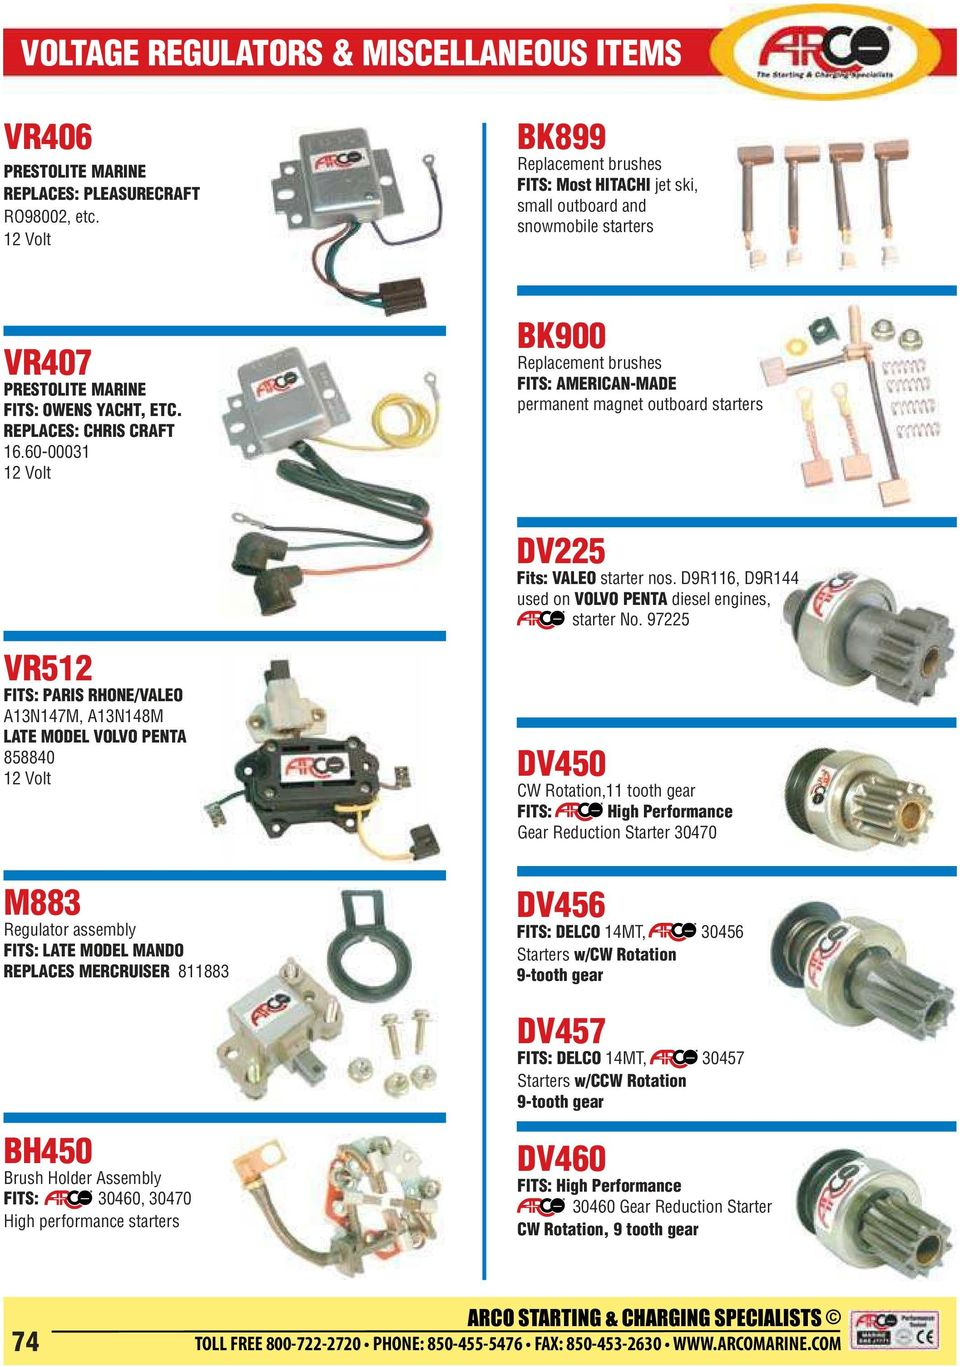 Replacement Solenoids Pdf Valeo Starter Generator Wiring Diagram 60 00031 Bk900 Brushes Fits American Made Permanent Magnet Outboard Starters Dv225